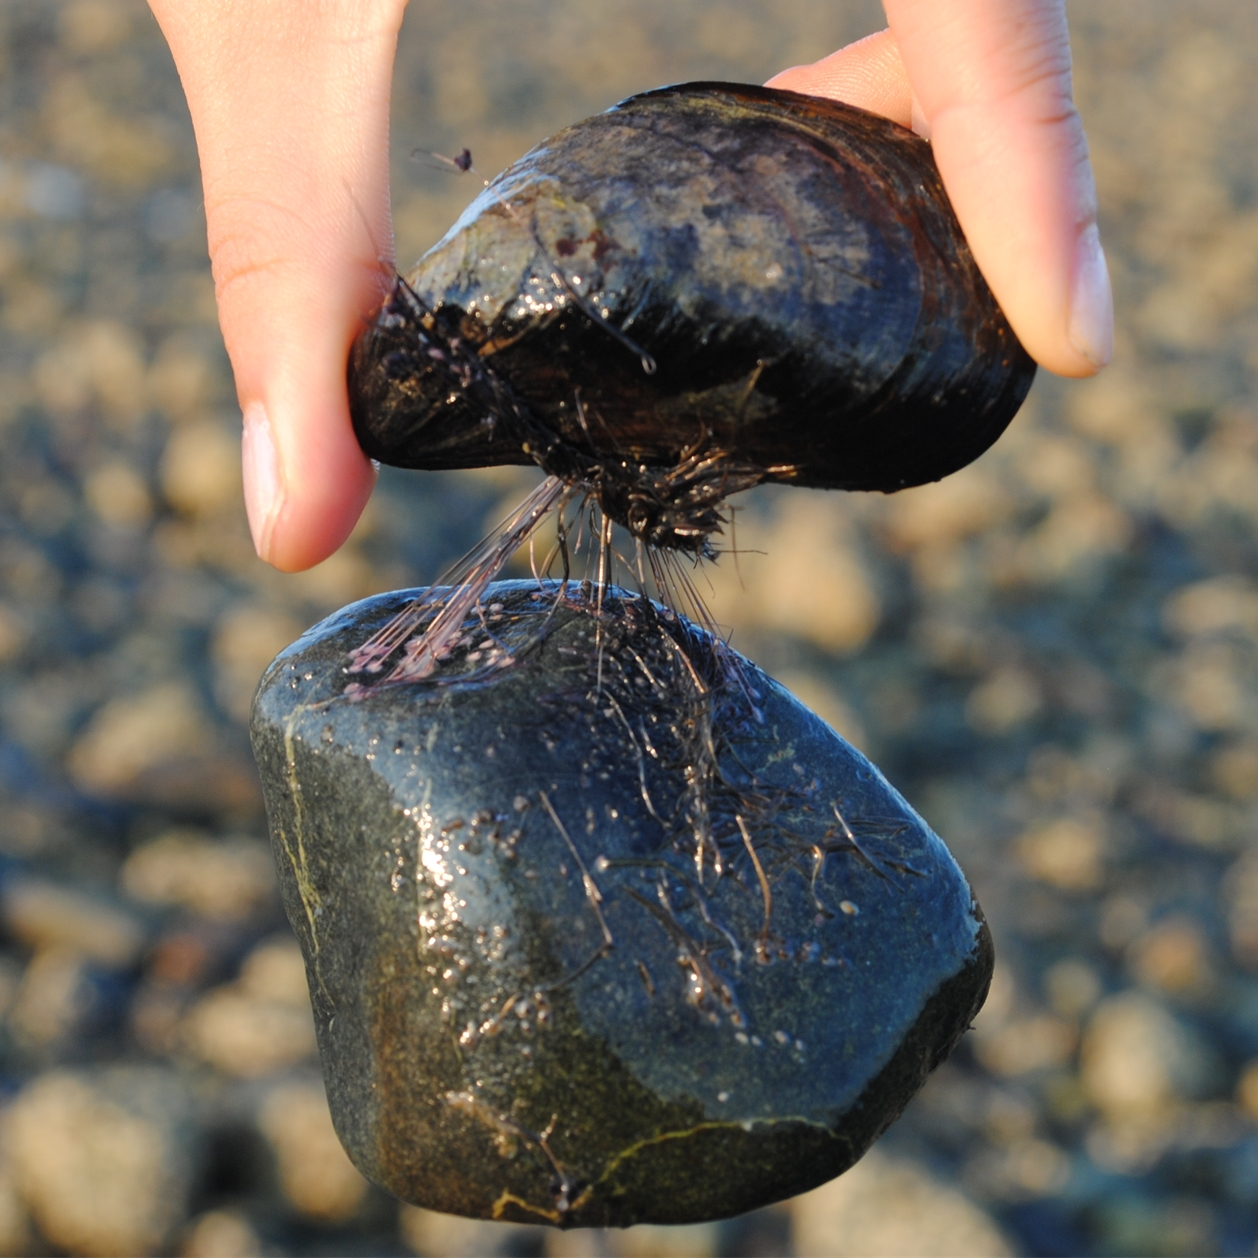 Mussels Sticky Secrets And Energy Absorbing Materials